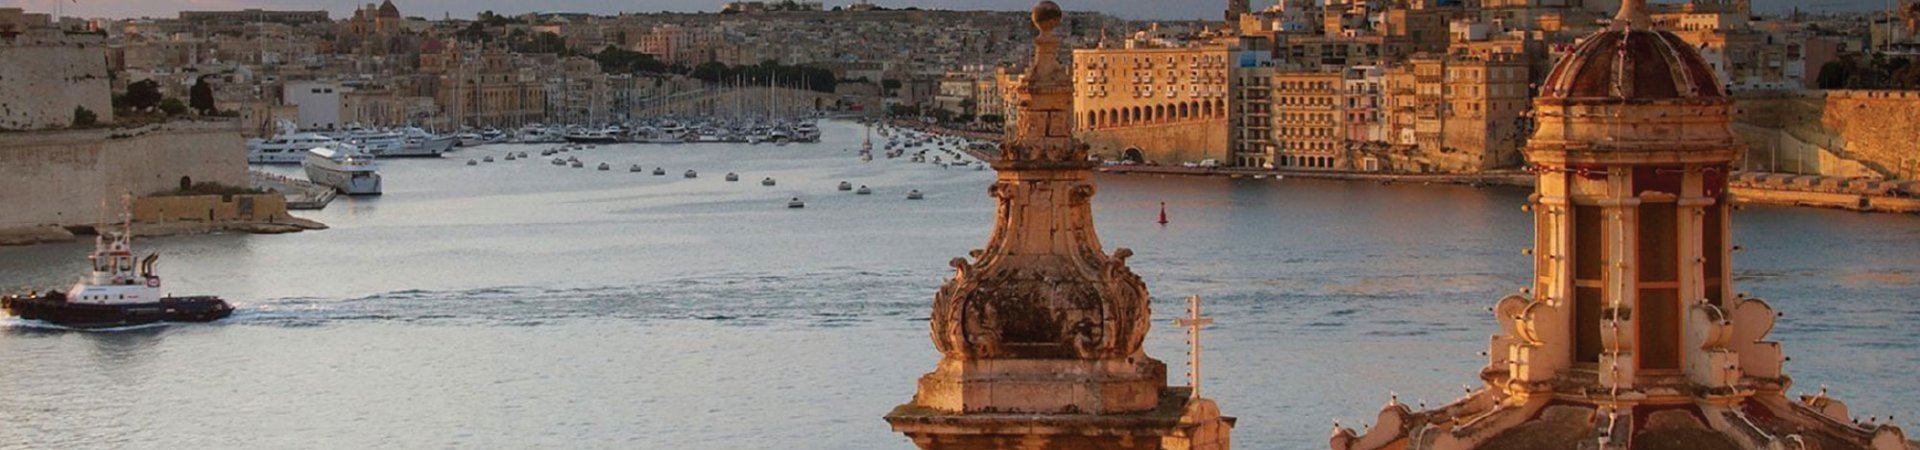 Useful Links Gauci and Partners Advocates, malta law firm, malta lawyers, legal services malta, tax services malta, corporate law malta, commercial law malta, finance law malta, marine law malta